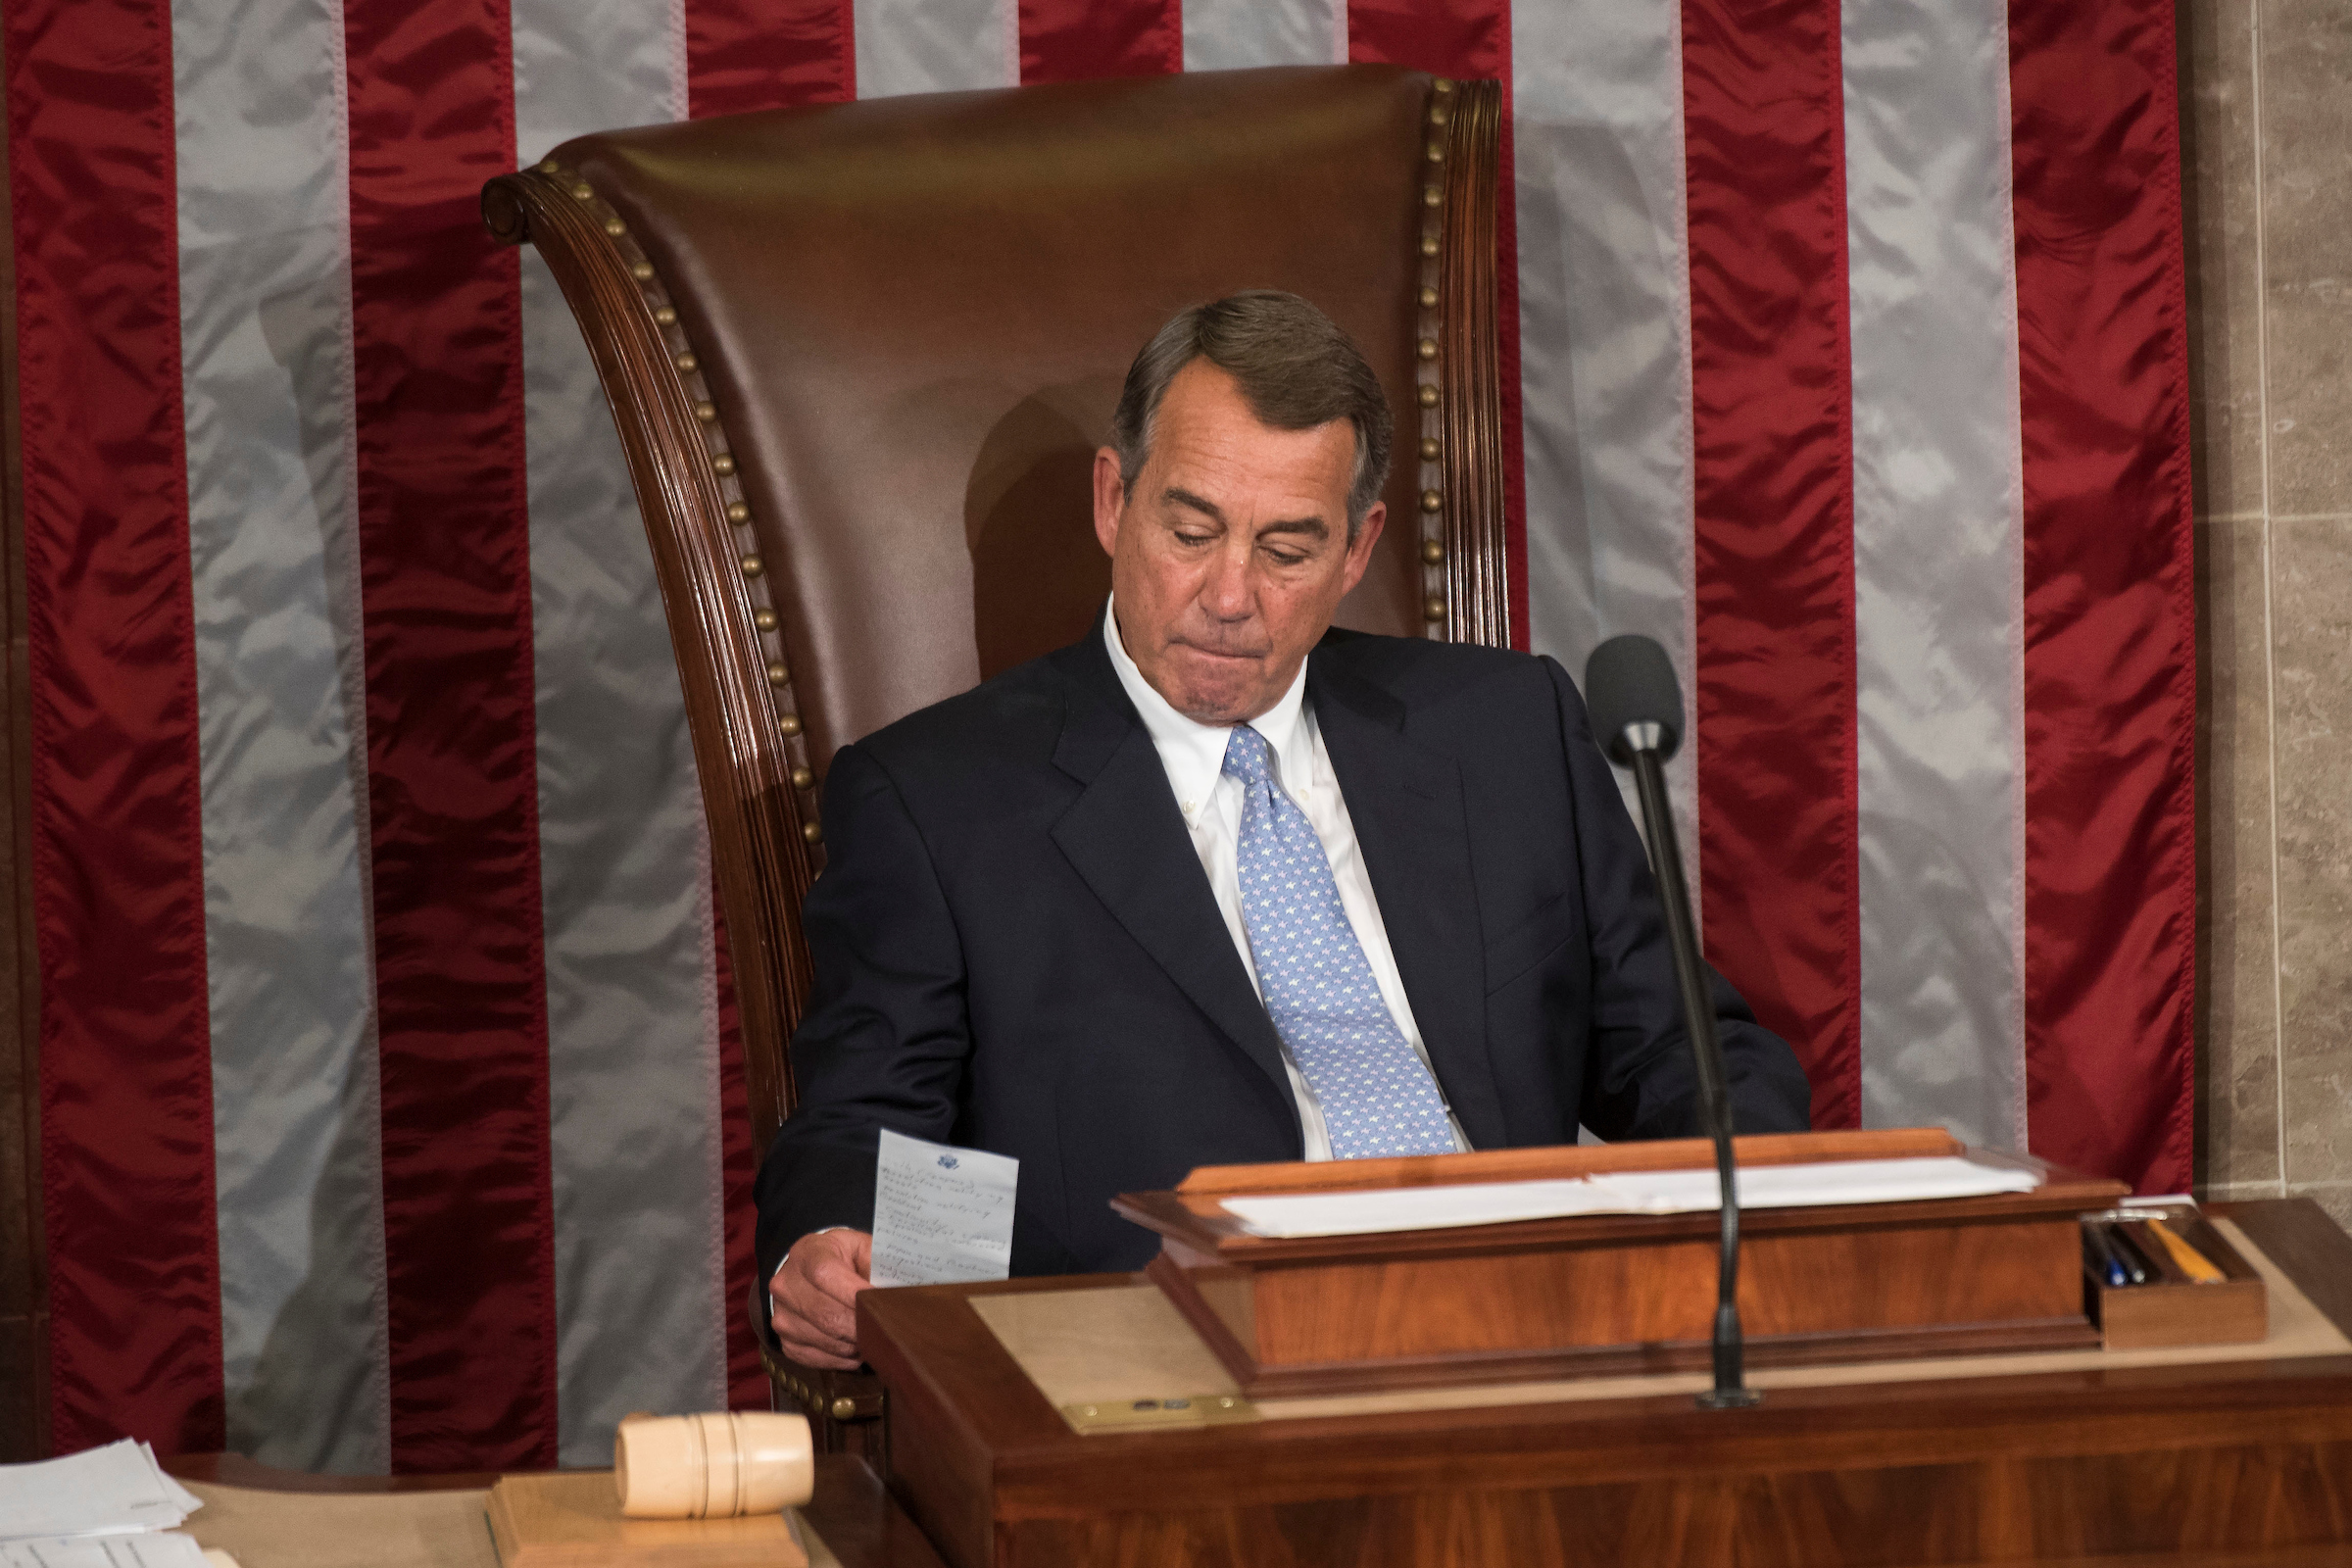 Outgoing Speaker John Boehner, R-Ohio, looks at his notes while waiting for a vote on the new Speaker in the House Chamber of the U.S. Capitol in Washington. (Drago/CQ Roll Call File Photo)